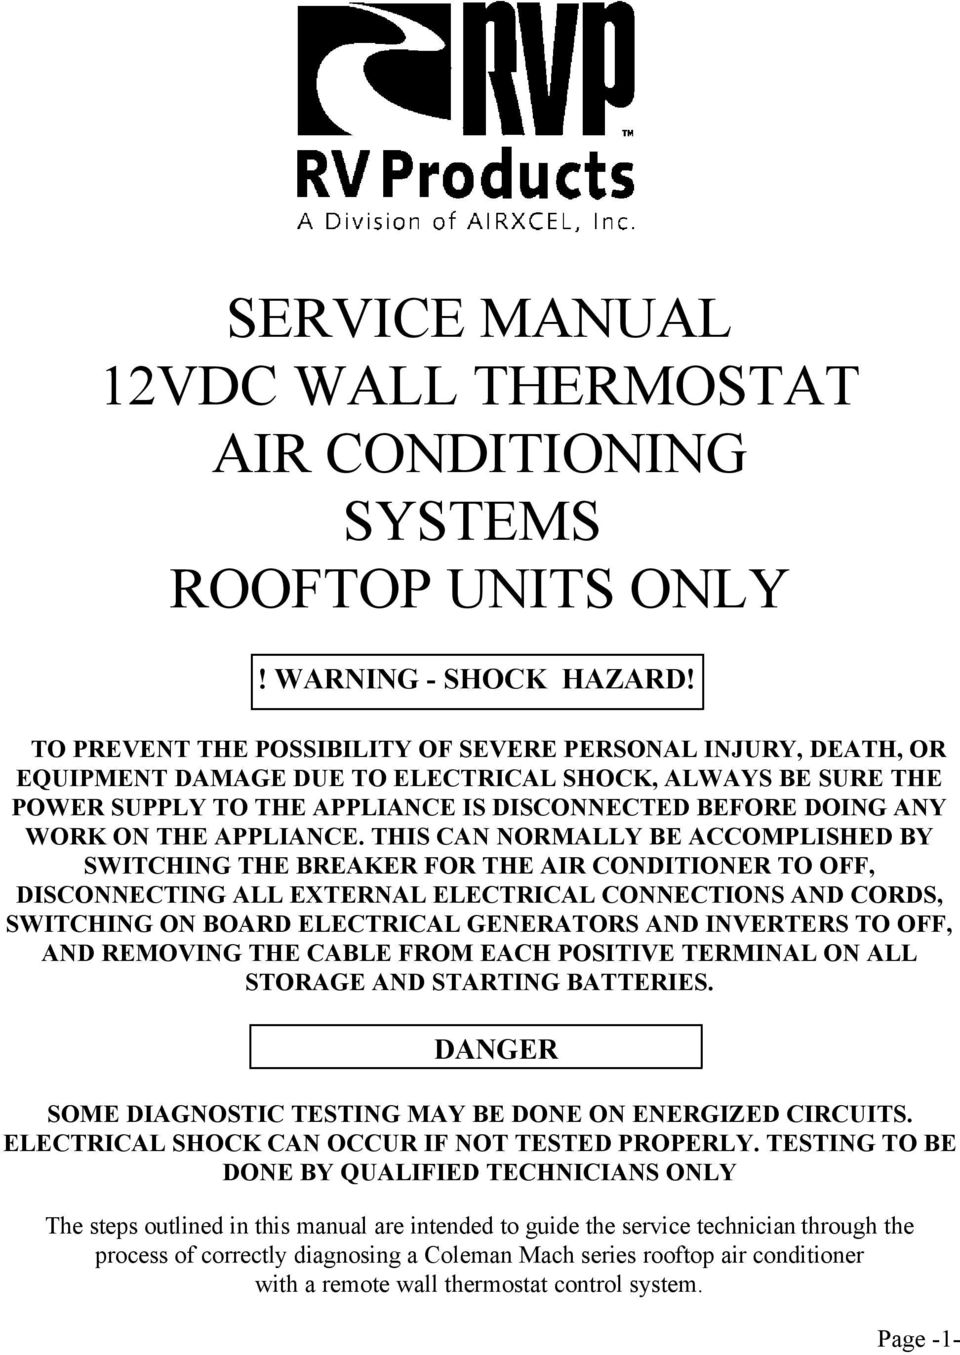 SERVICE MANUAL 12VDC WALL THERMOSTAT AIR CONDITIONING